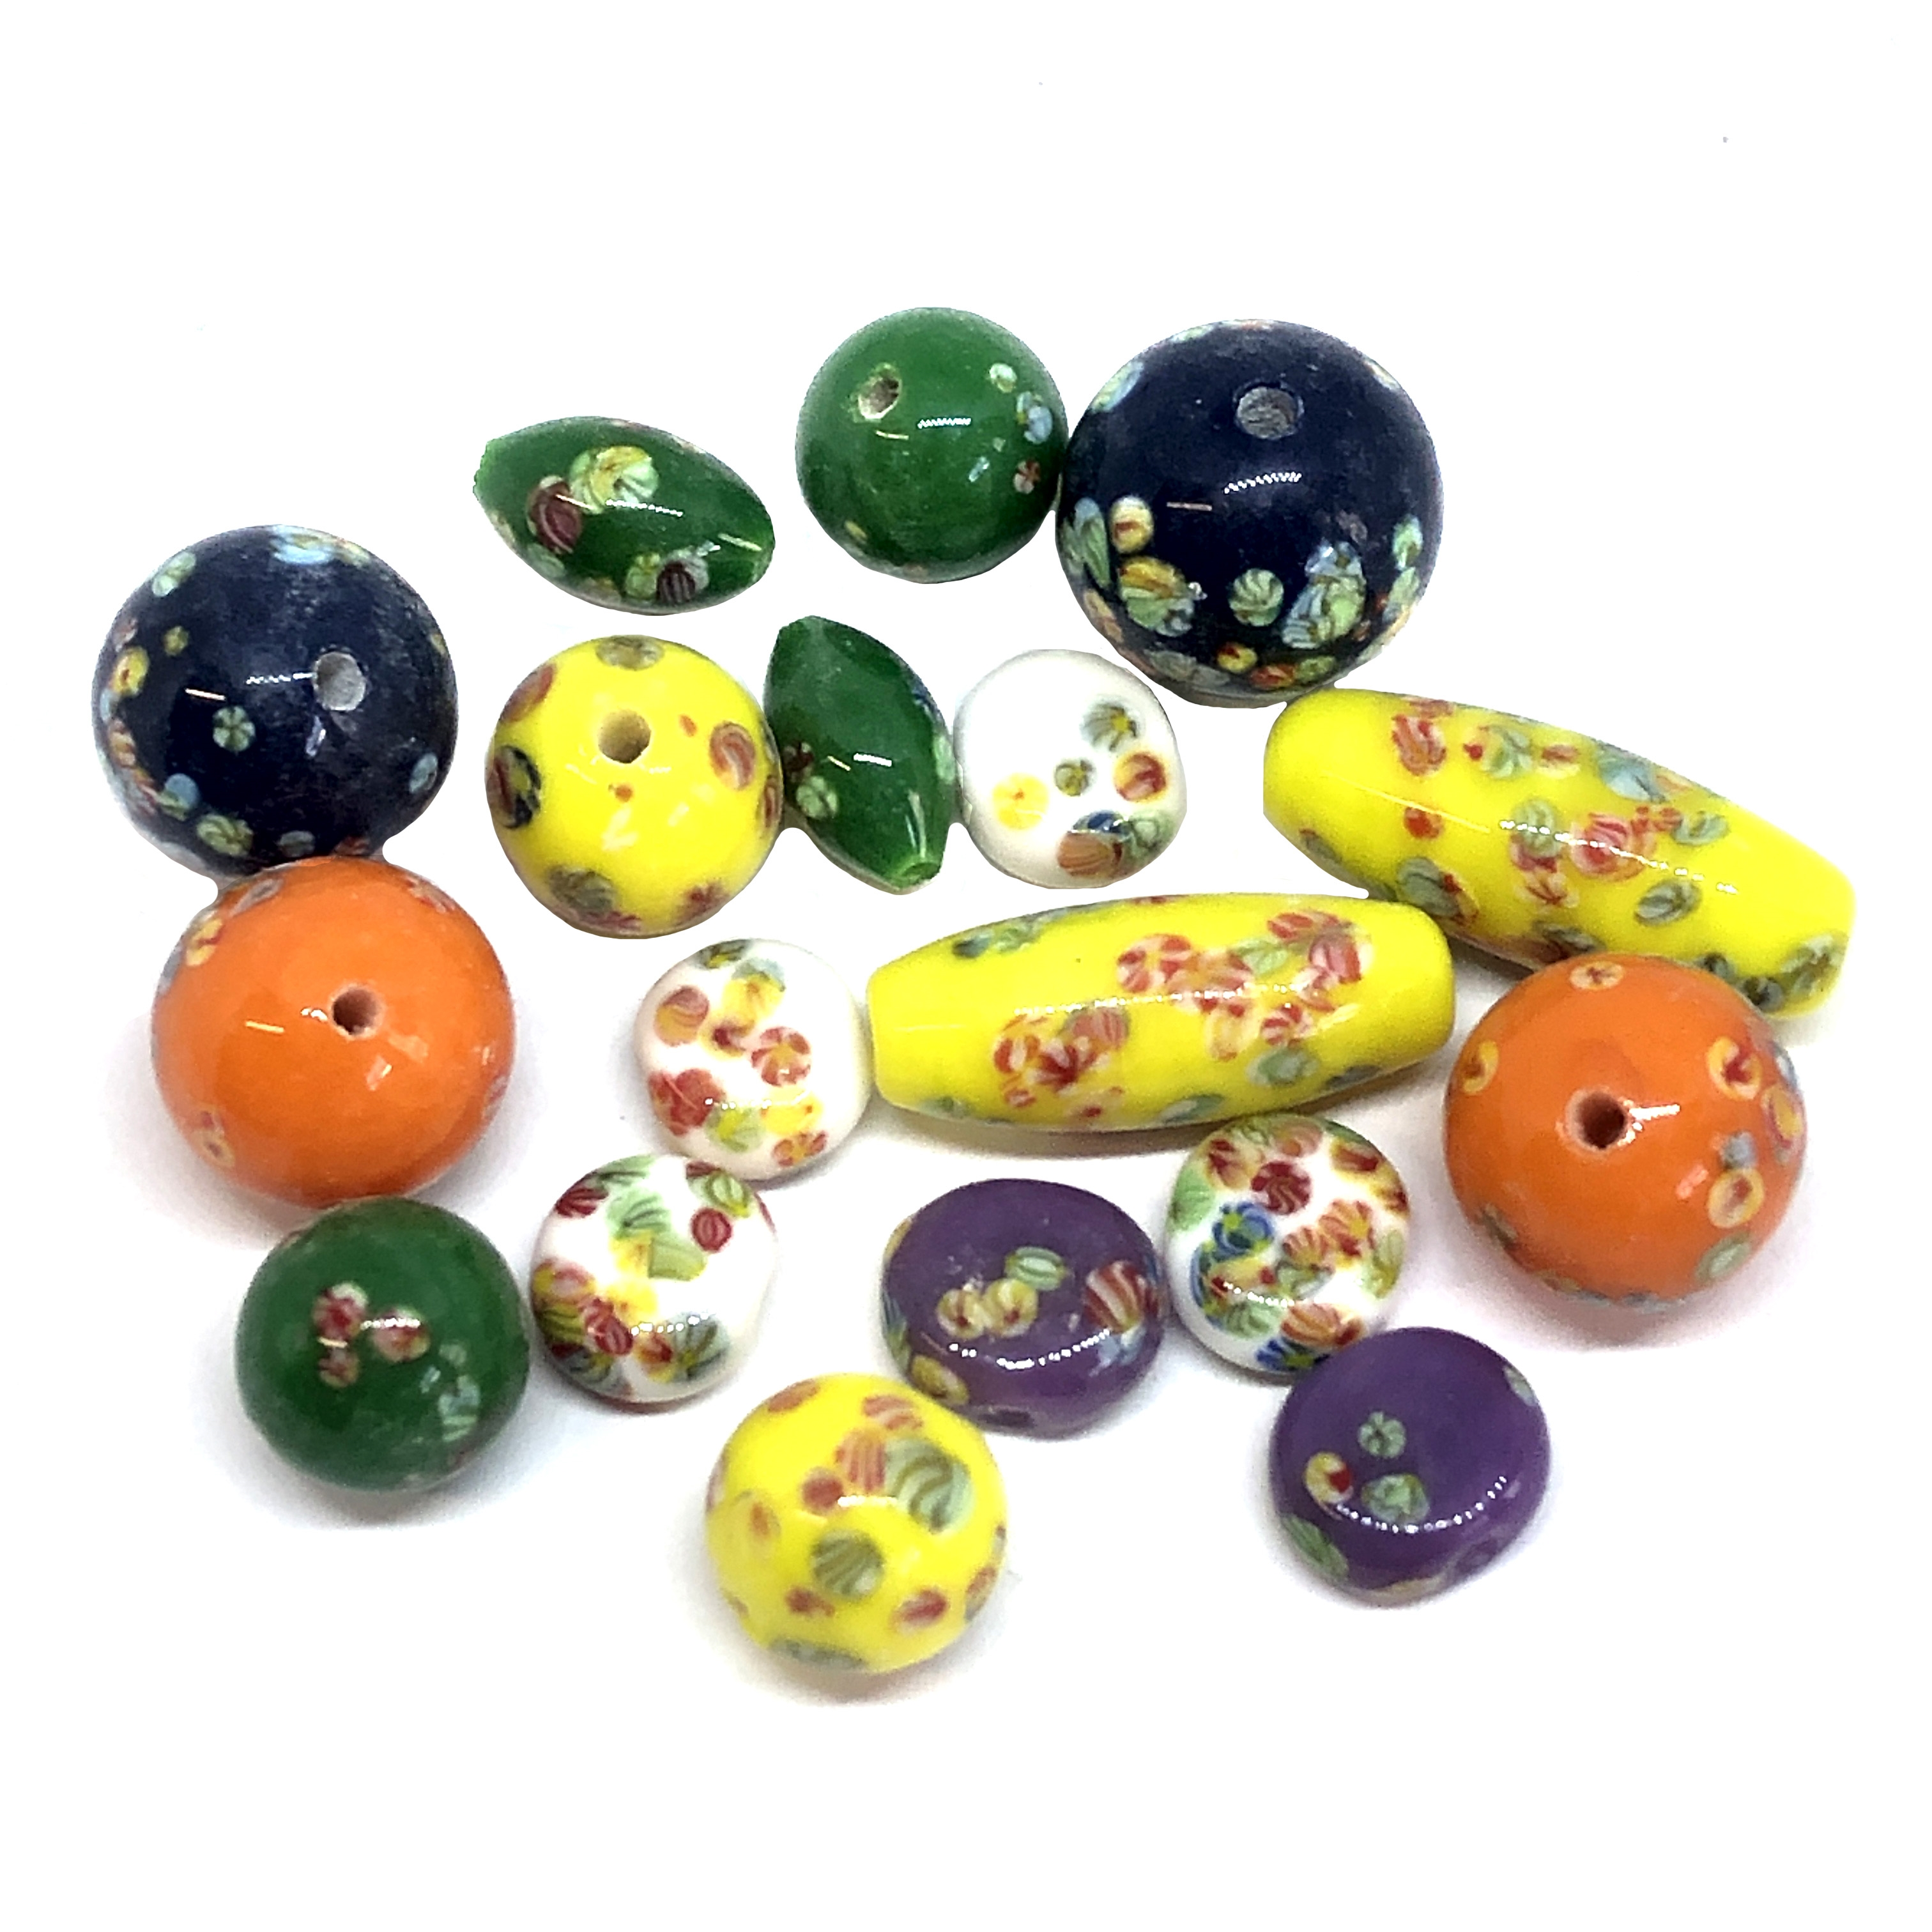 Floral glass beads, Japanese handmade beads, beading supplies, assorted colors,  jewelry making, jewelry supplies, B'sue, assorted shapes and sizes, glass beads, 01008, vintage Japanese beads, vintage beads, mixed colors, mixed assortment